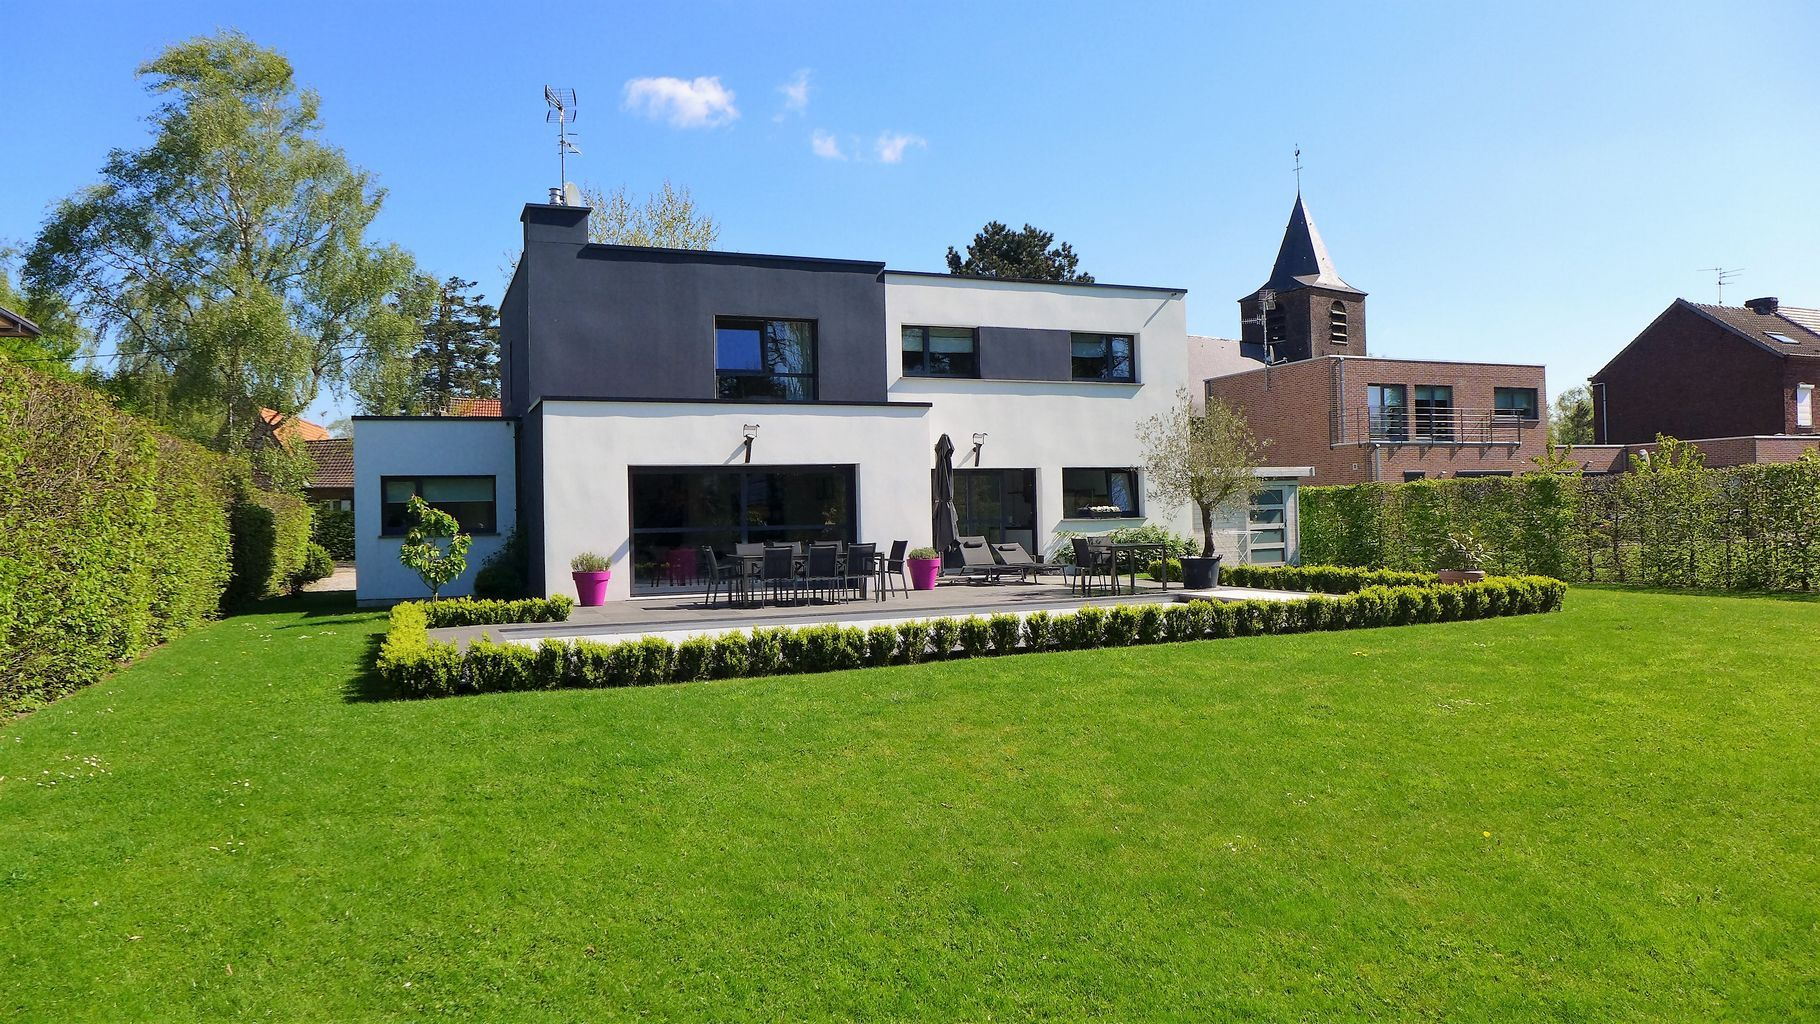 Aim agence immobili re lille vente achat location maison for Agence immobiliere location vente